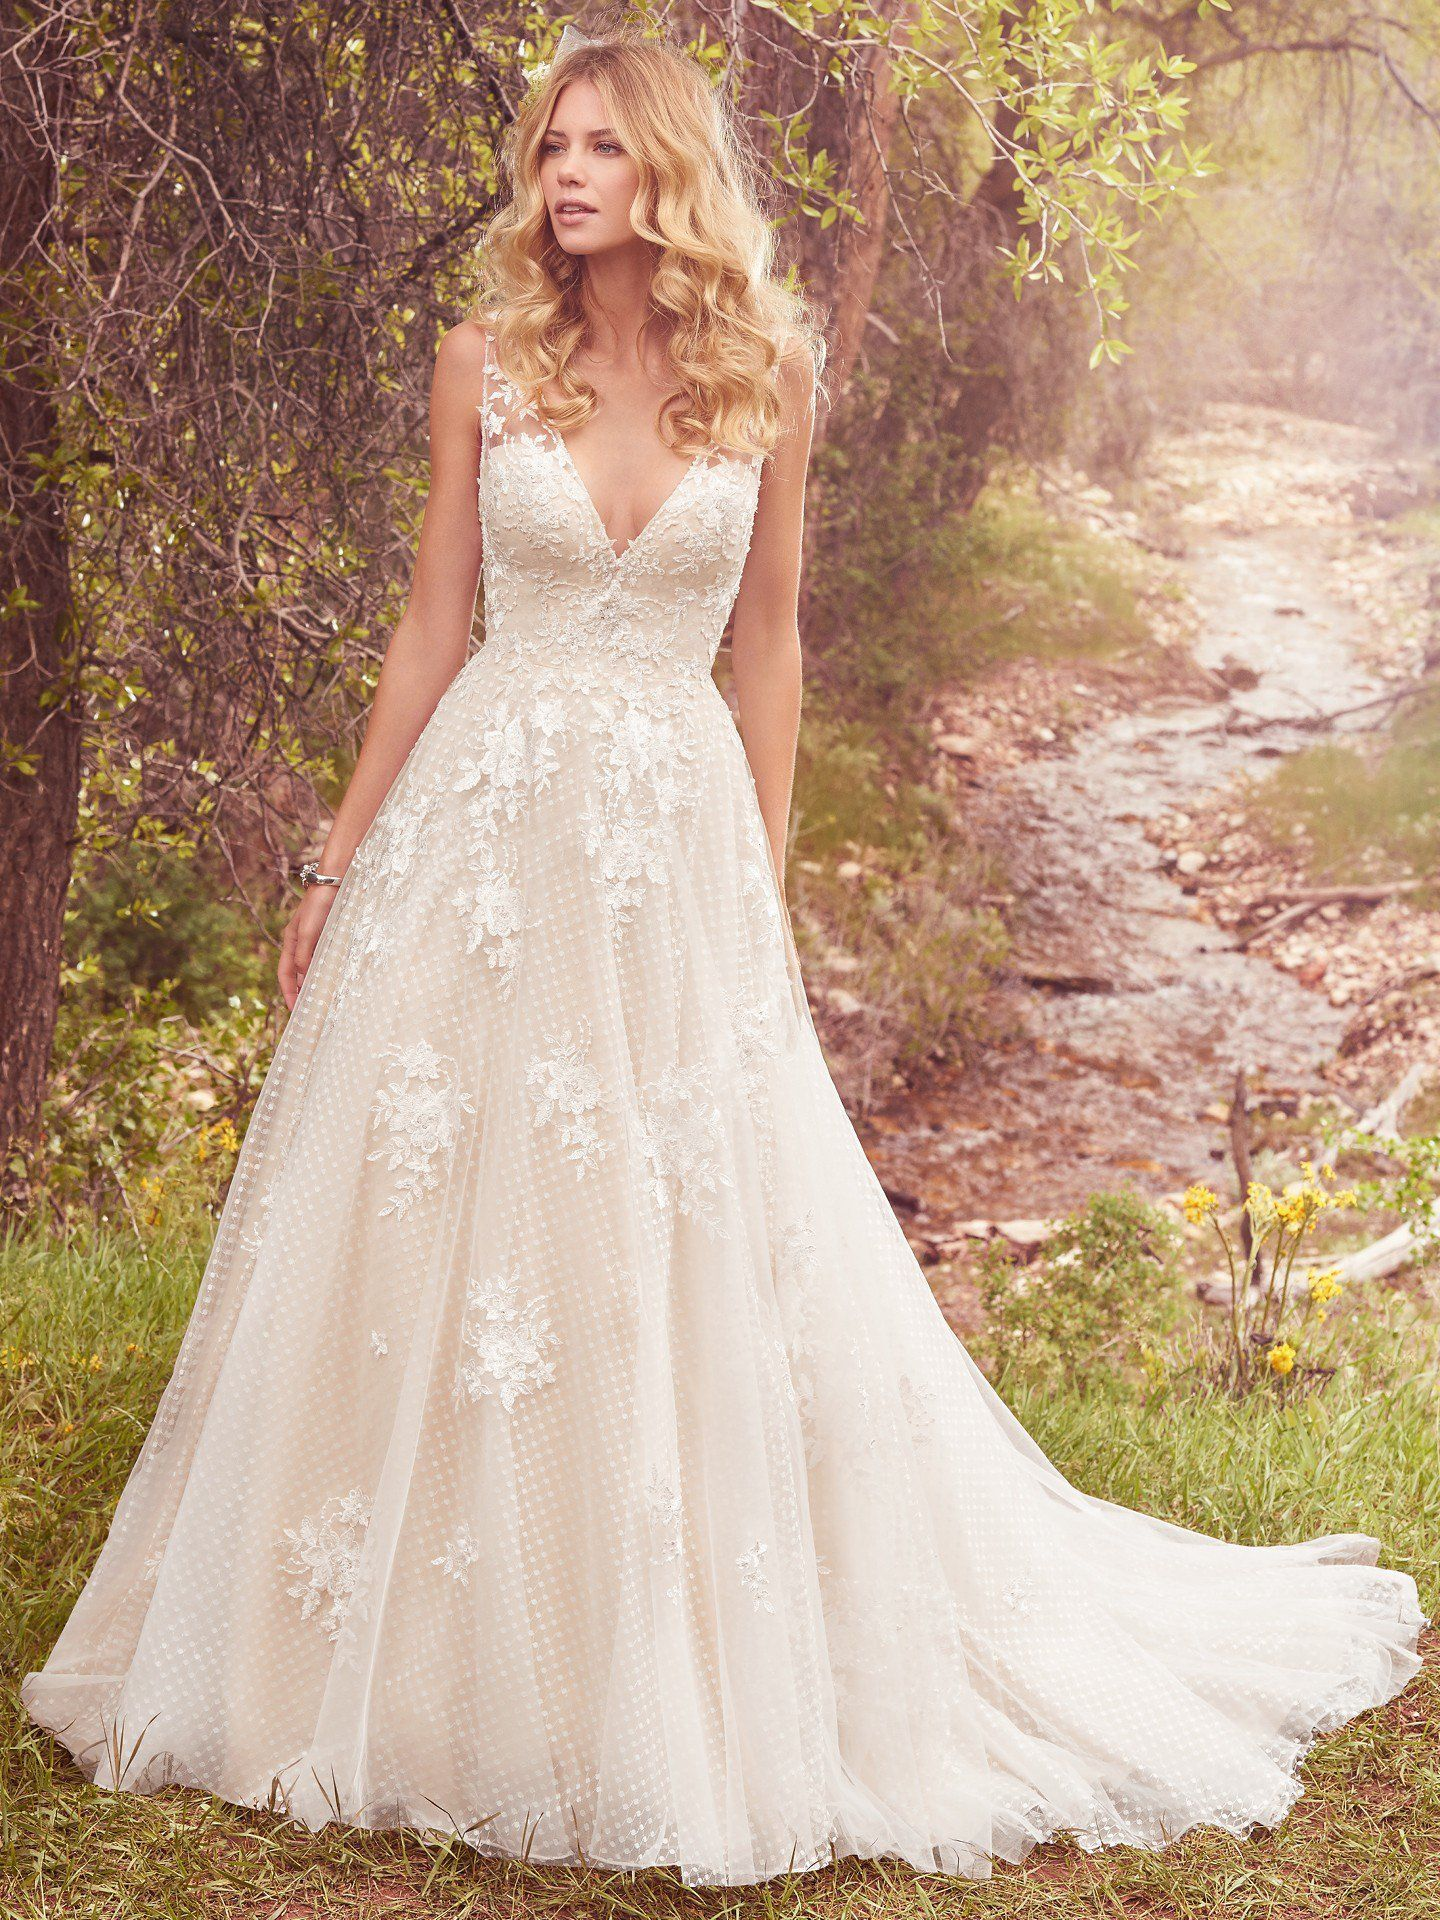 Maggie Sottero Wedding Dresses | Maggie sottero, Mermaid gown and ...